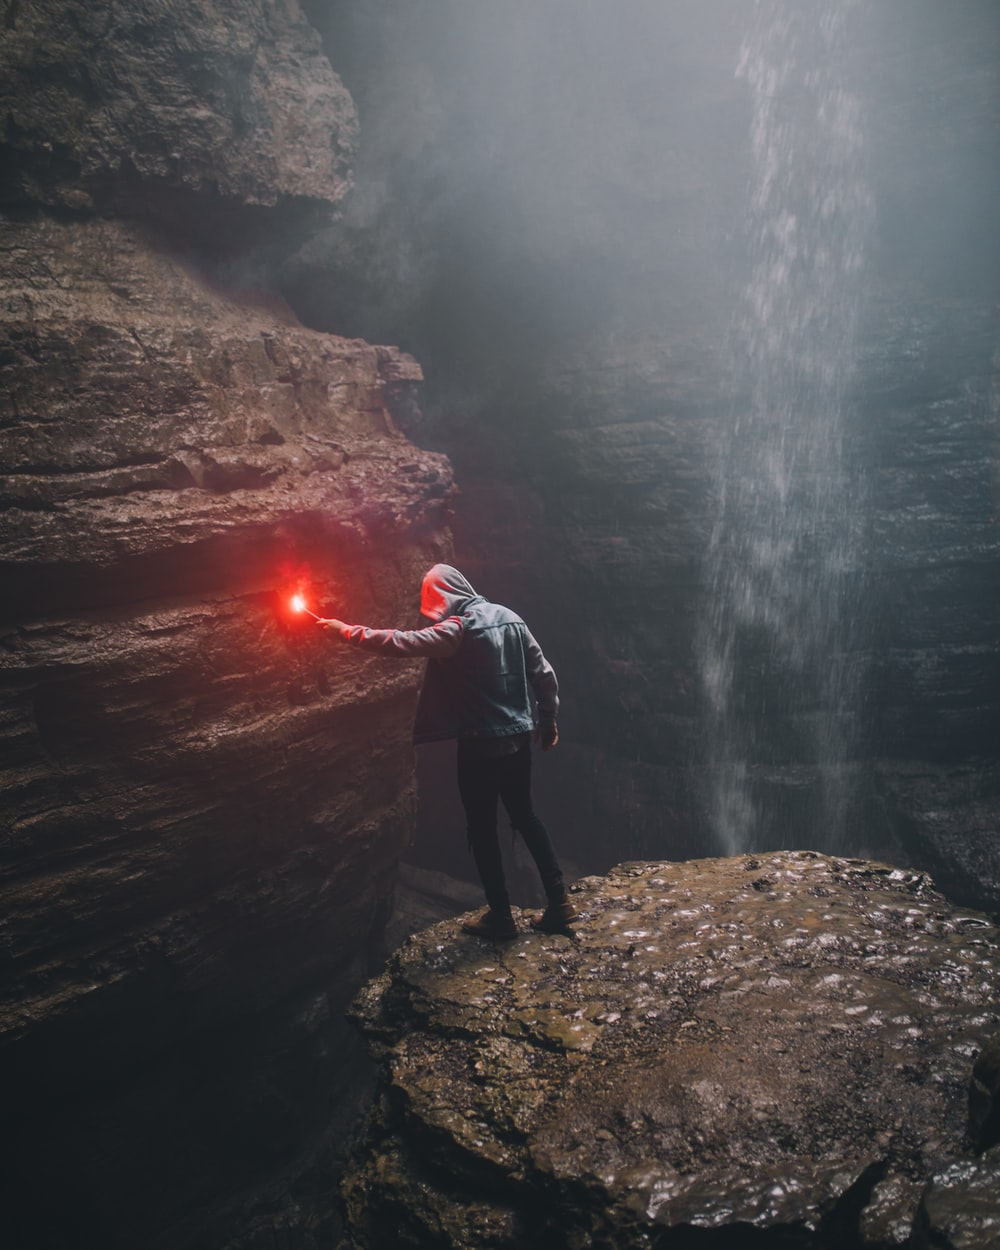 man holding flare in acve